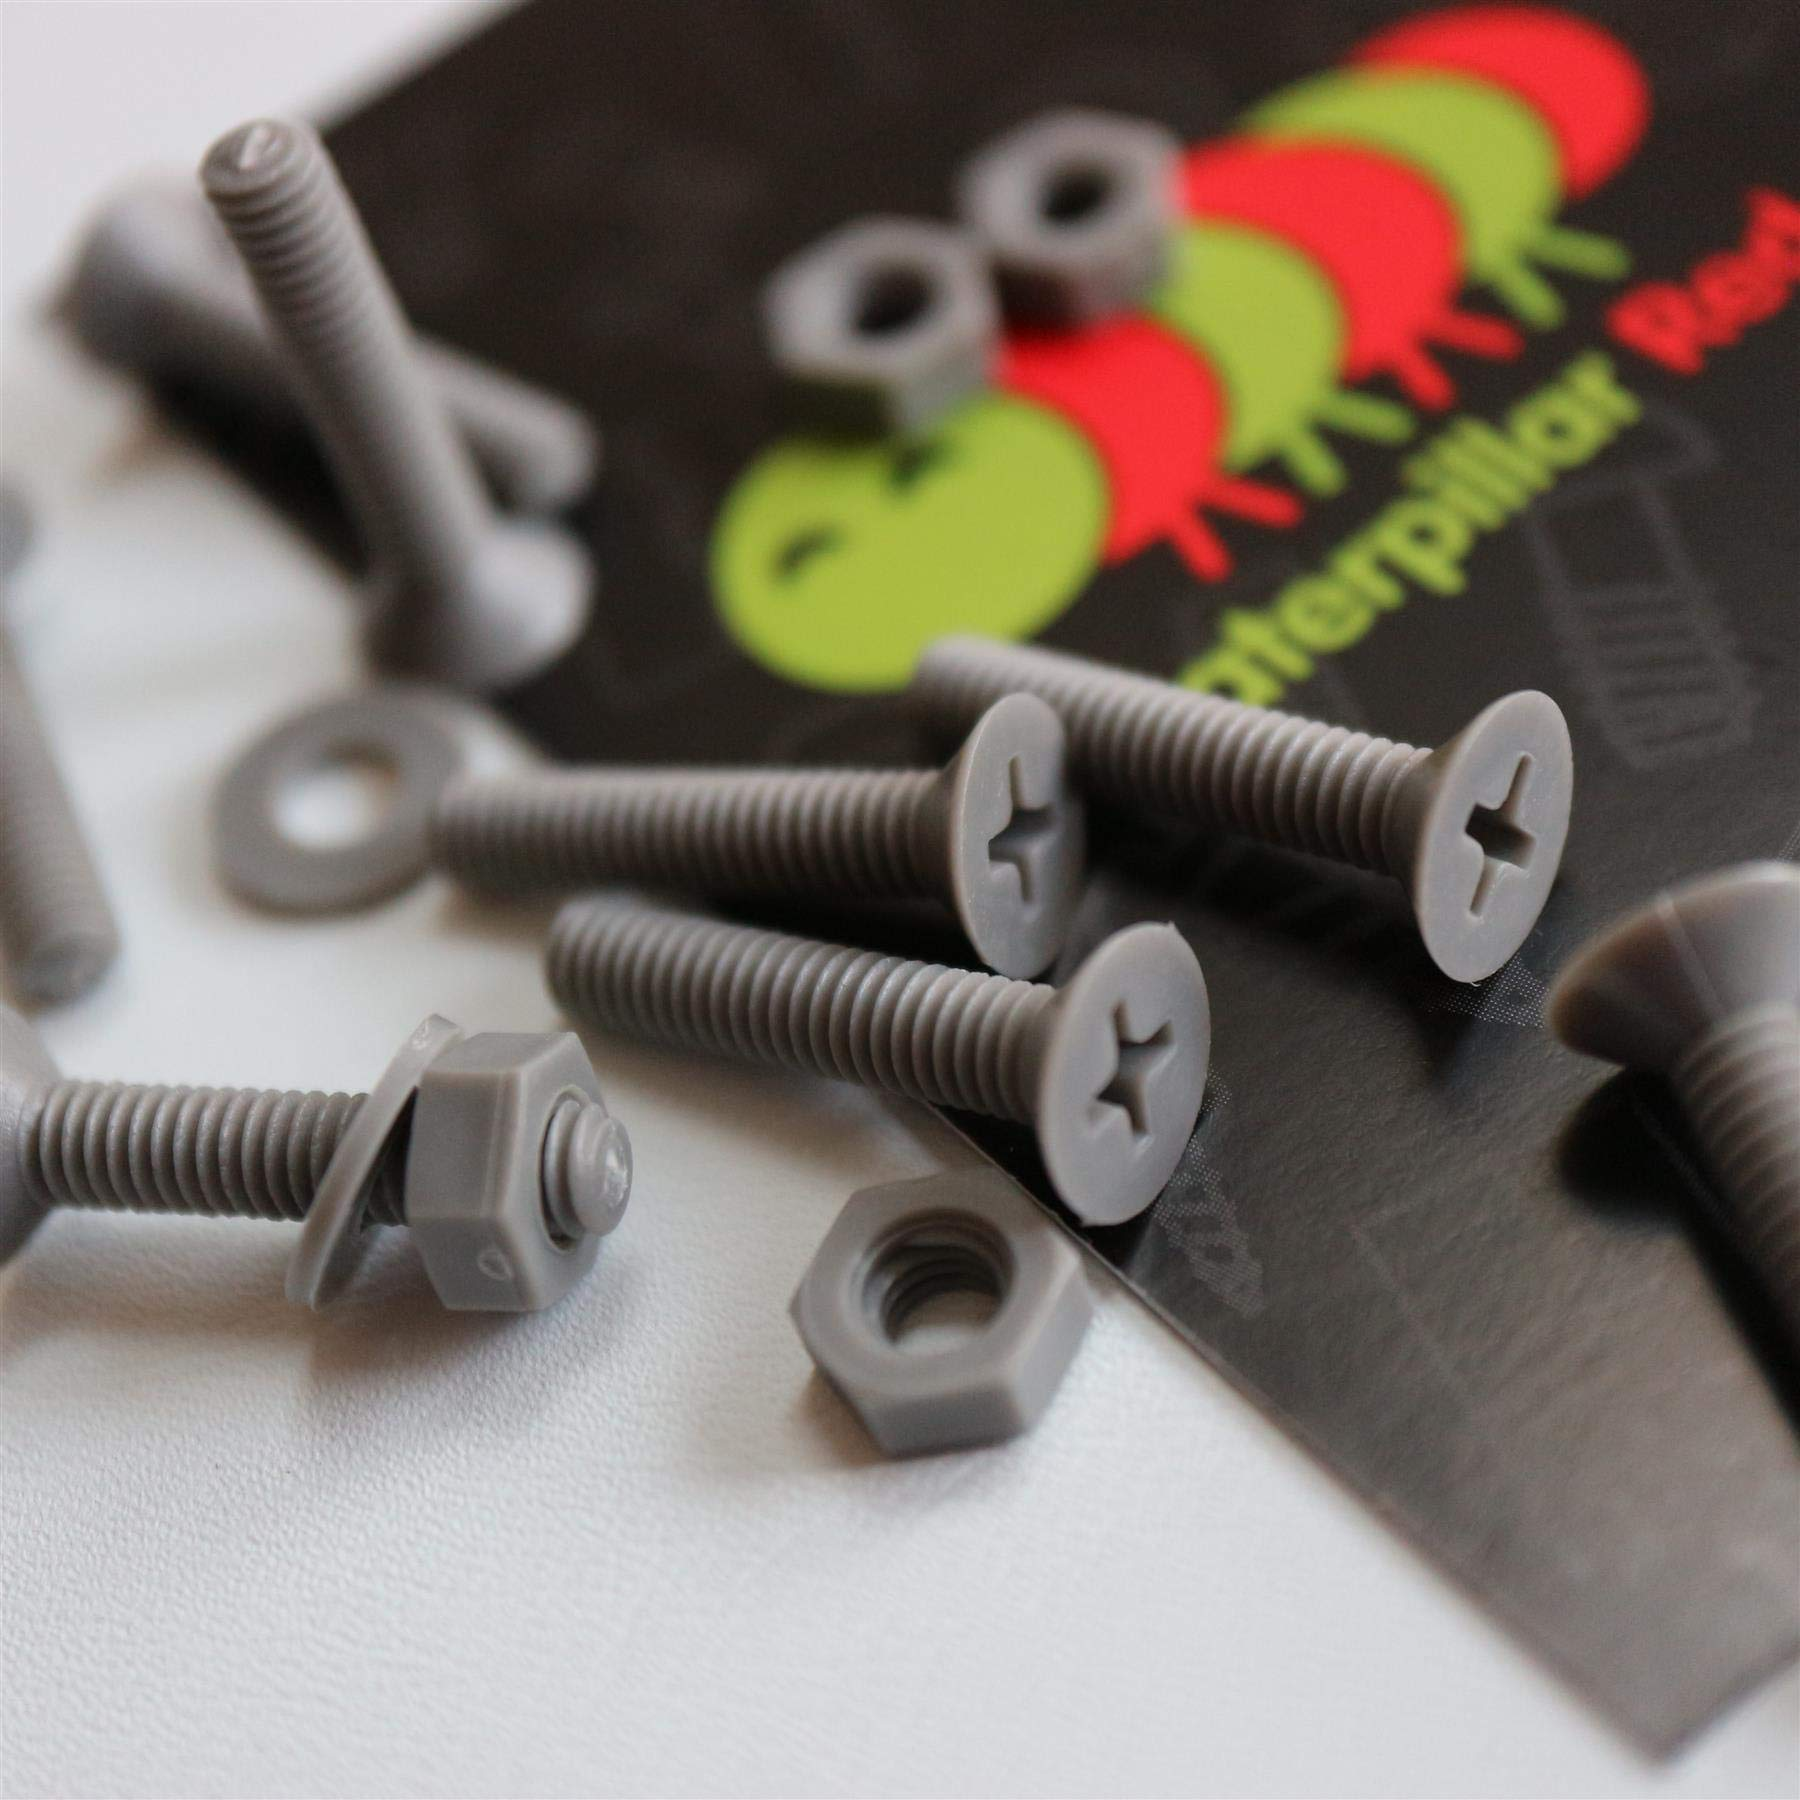 20 x Grey Countersunk Screws Polypropylene (PP) Plastic Nuts and Bolts, Washers, M4 x 20mm, Acrylic, Water Resistant, Anti-Corrosion, Chemical Resistant, Gray